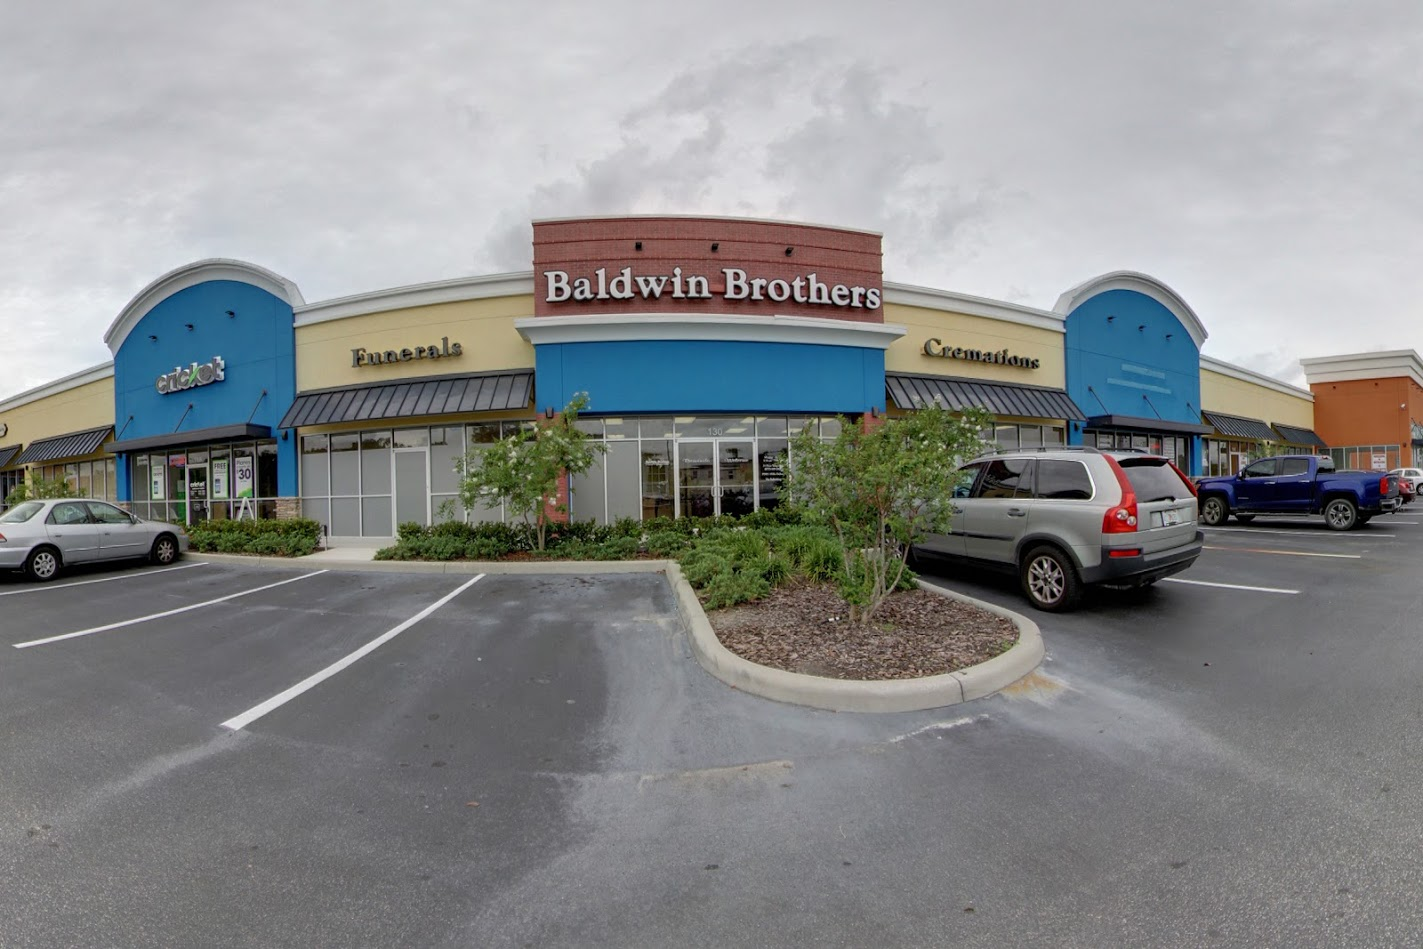 Baldwin Brothers Funeral & Cremation Society